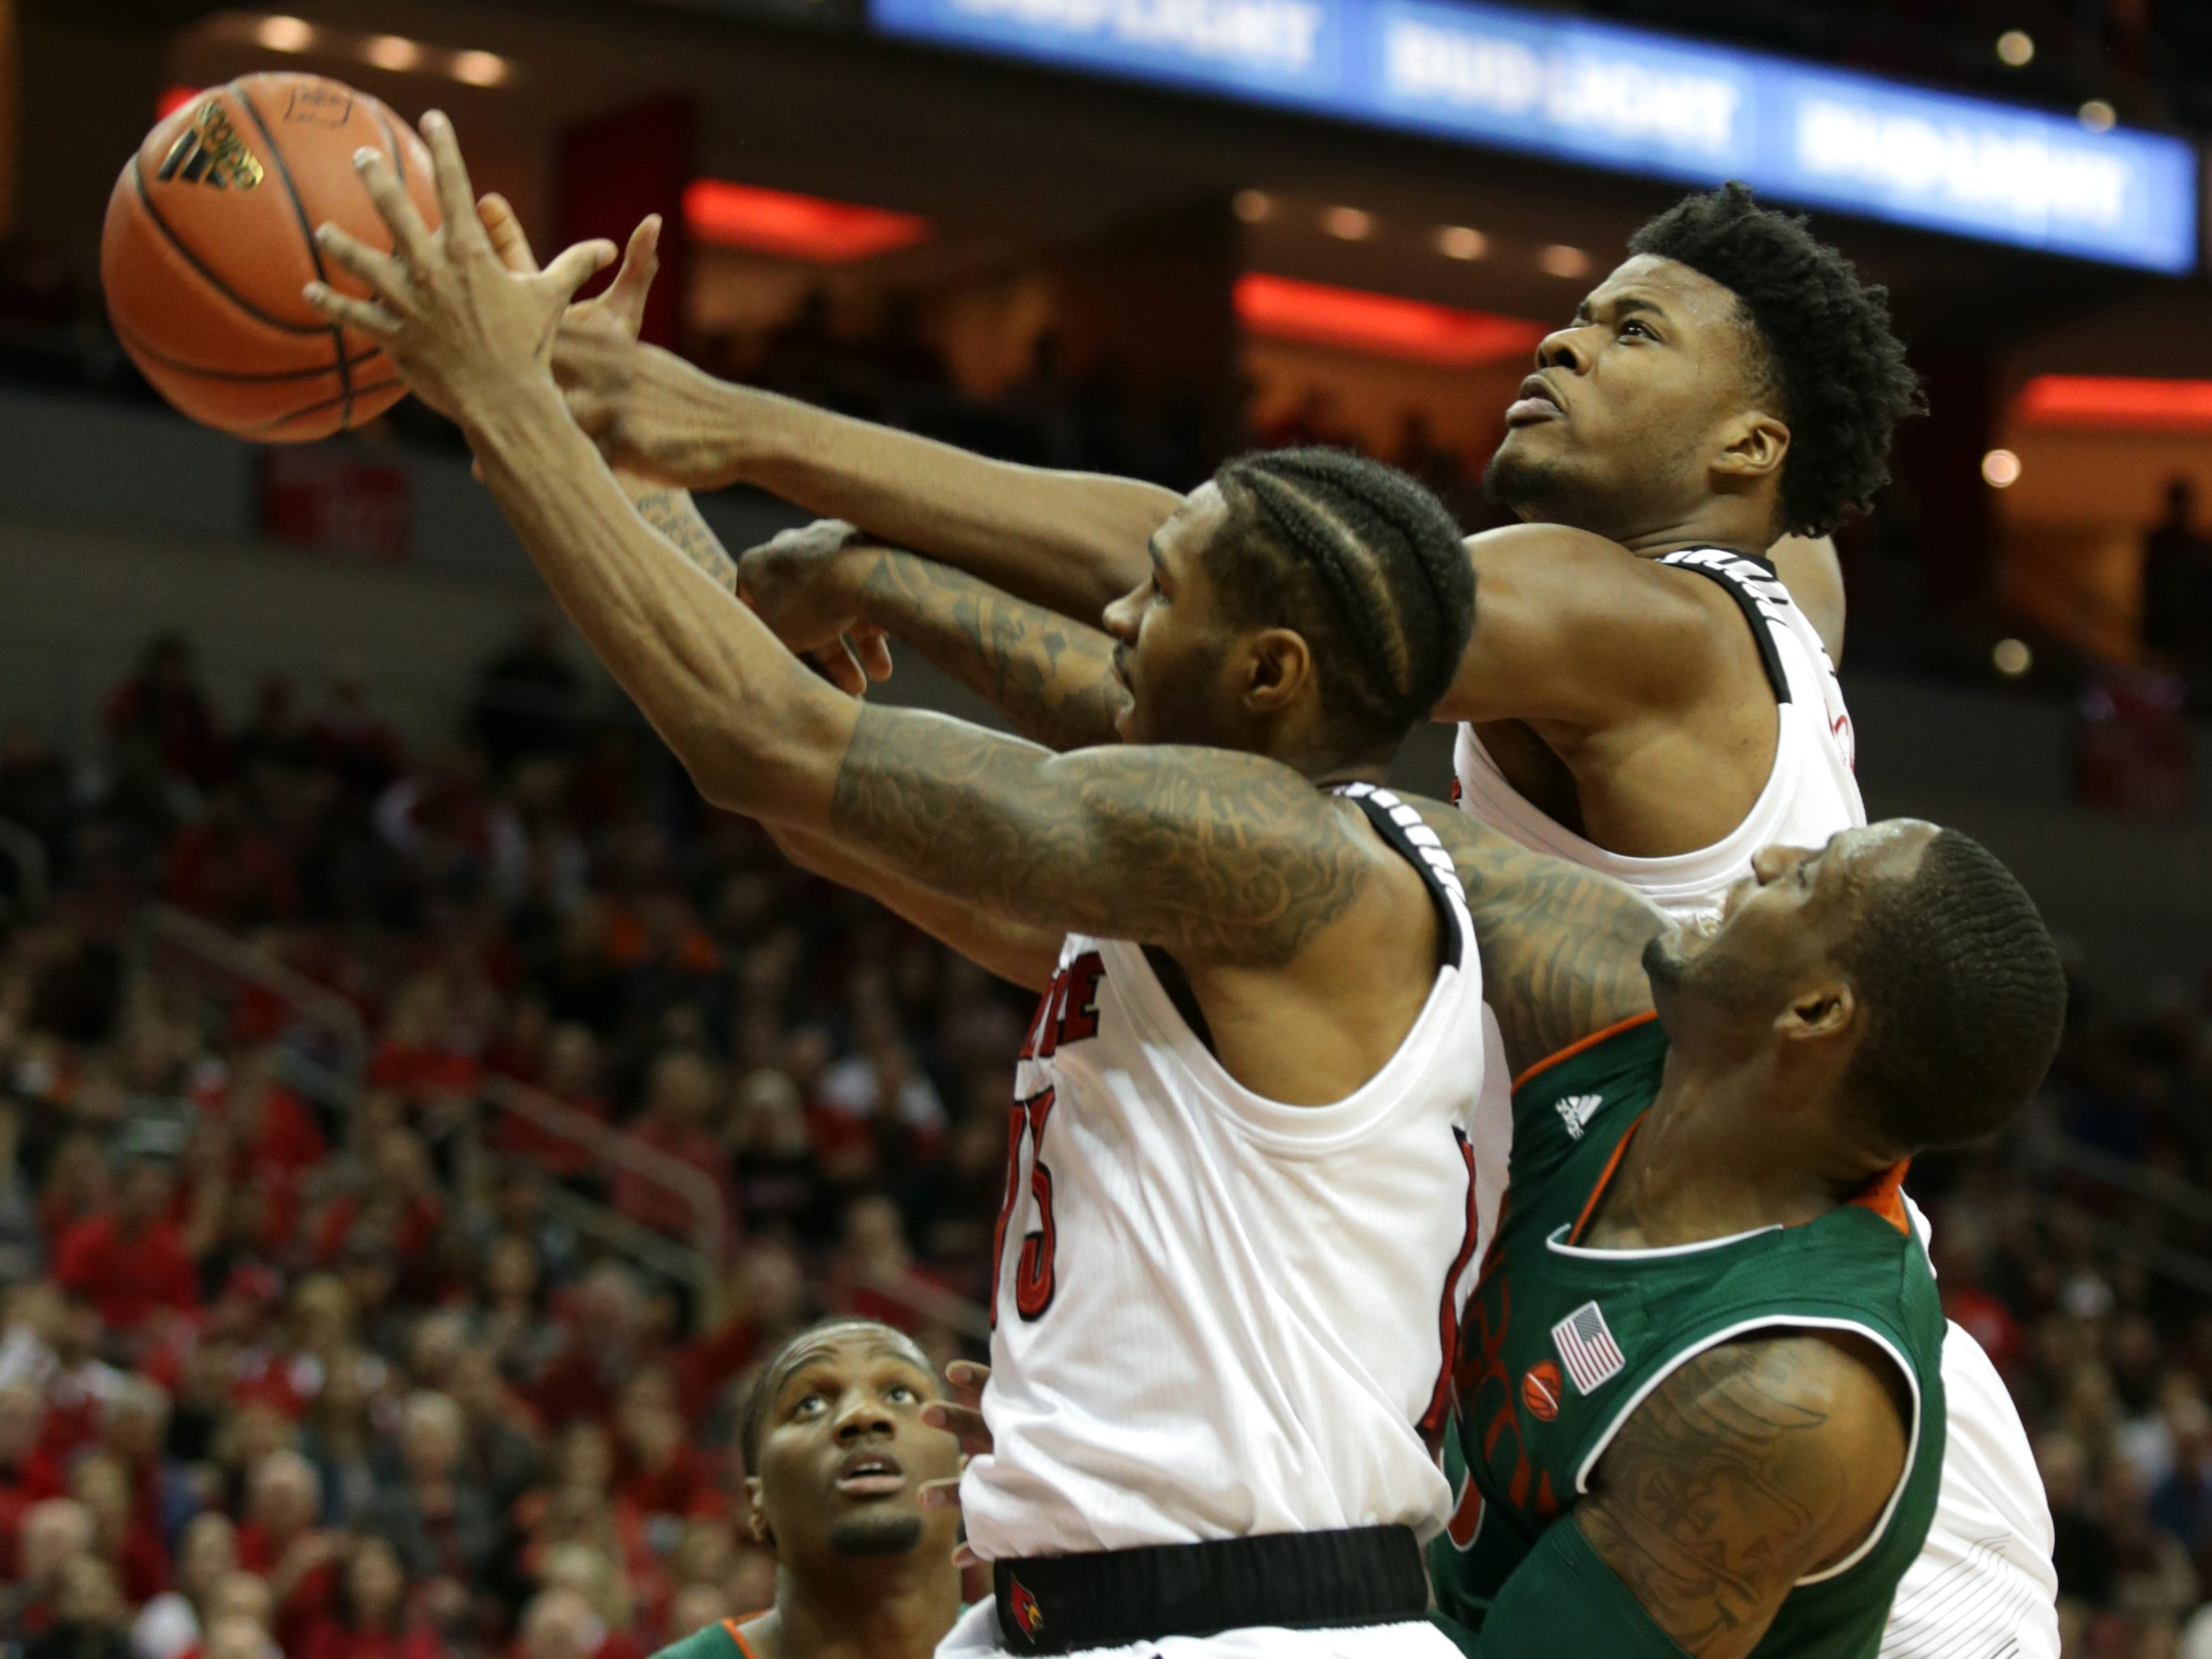 Louisville's V.J. King, left and Steven Enoch, top, battle for a round against Miami. Jan. 6, 2019.